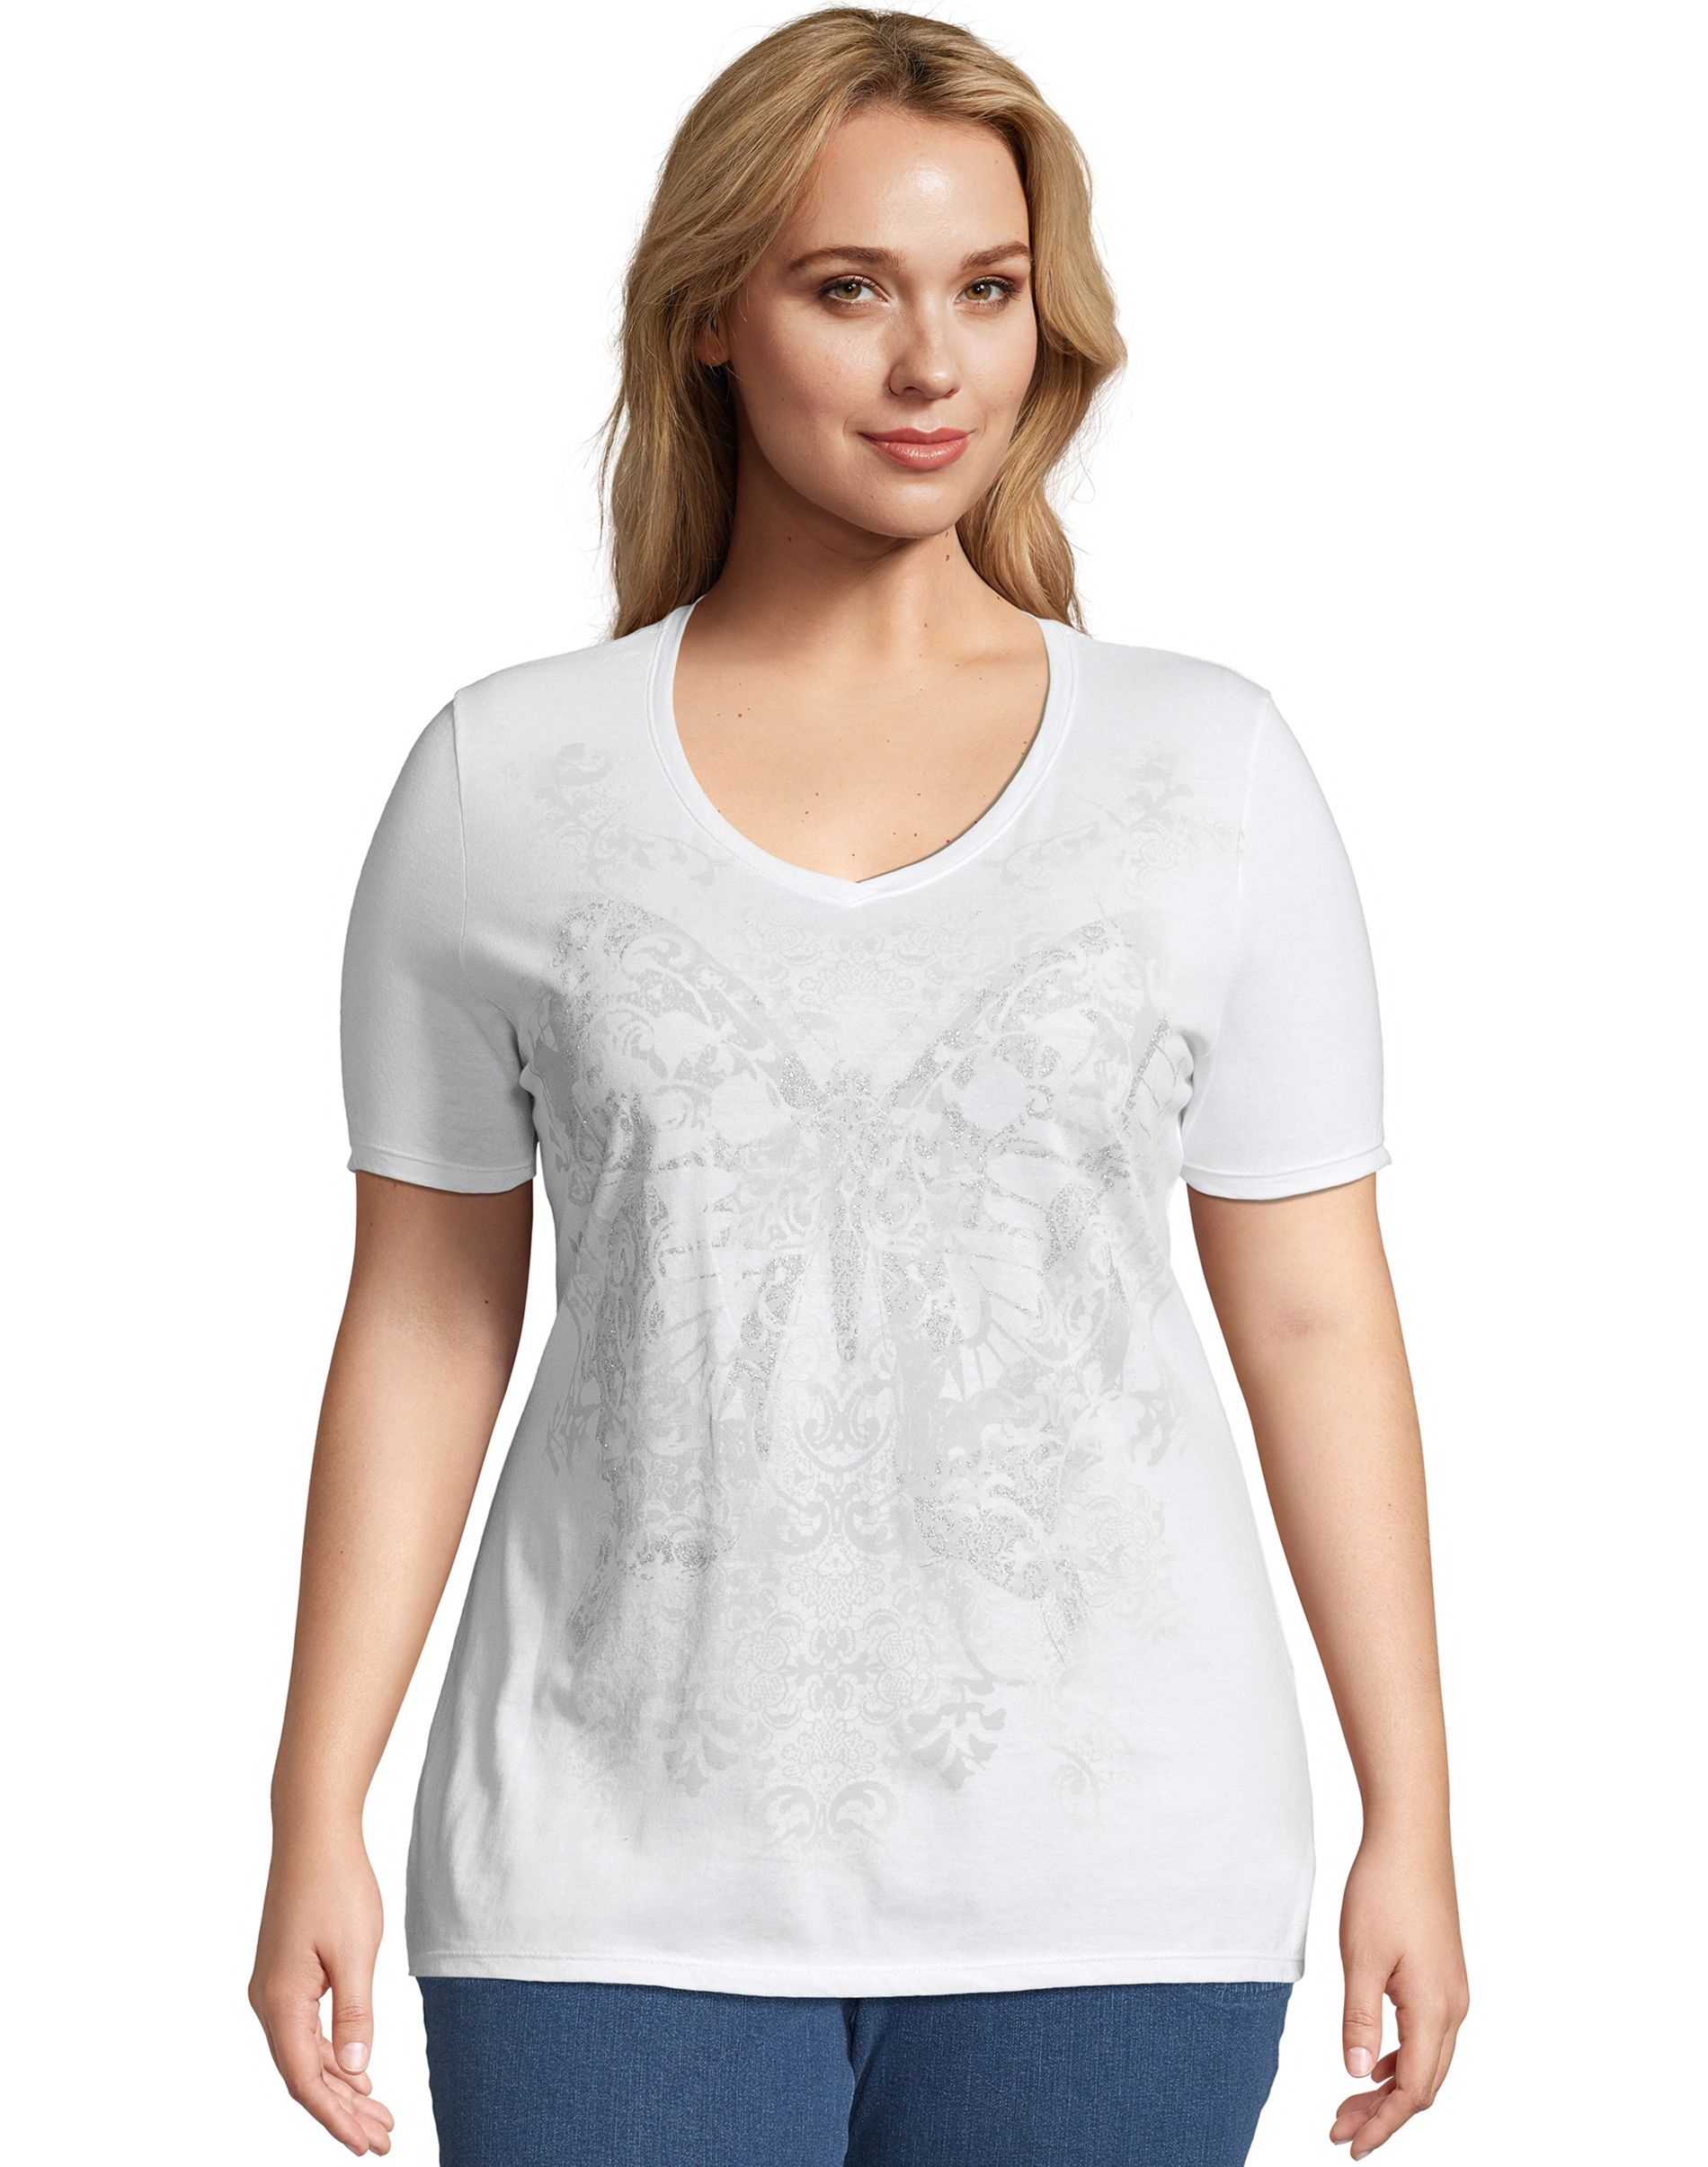 JMS Fall Wings Short Sleeve Graphic Tee women Just My Size